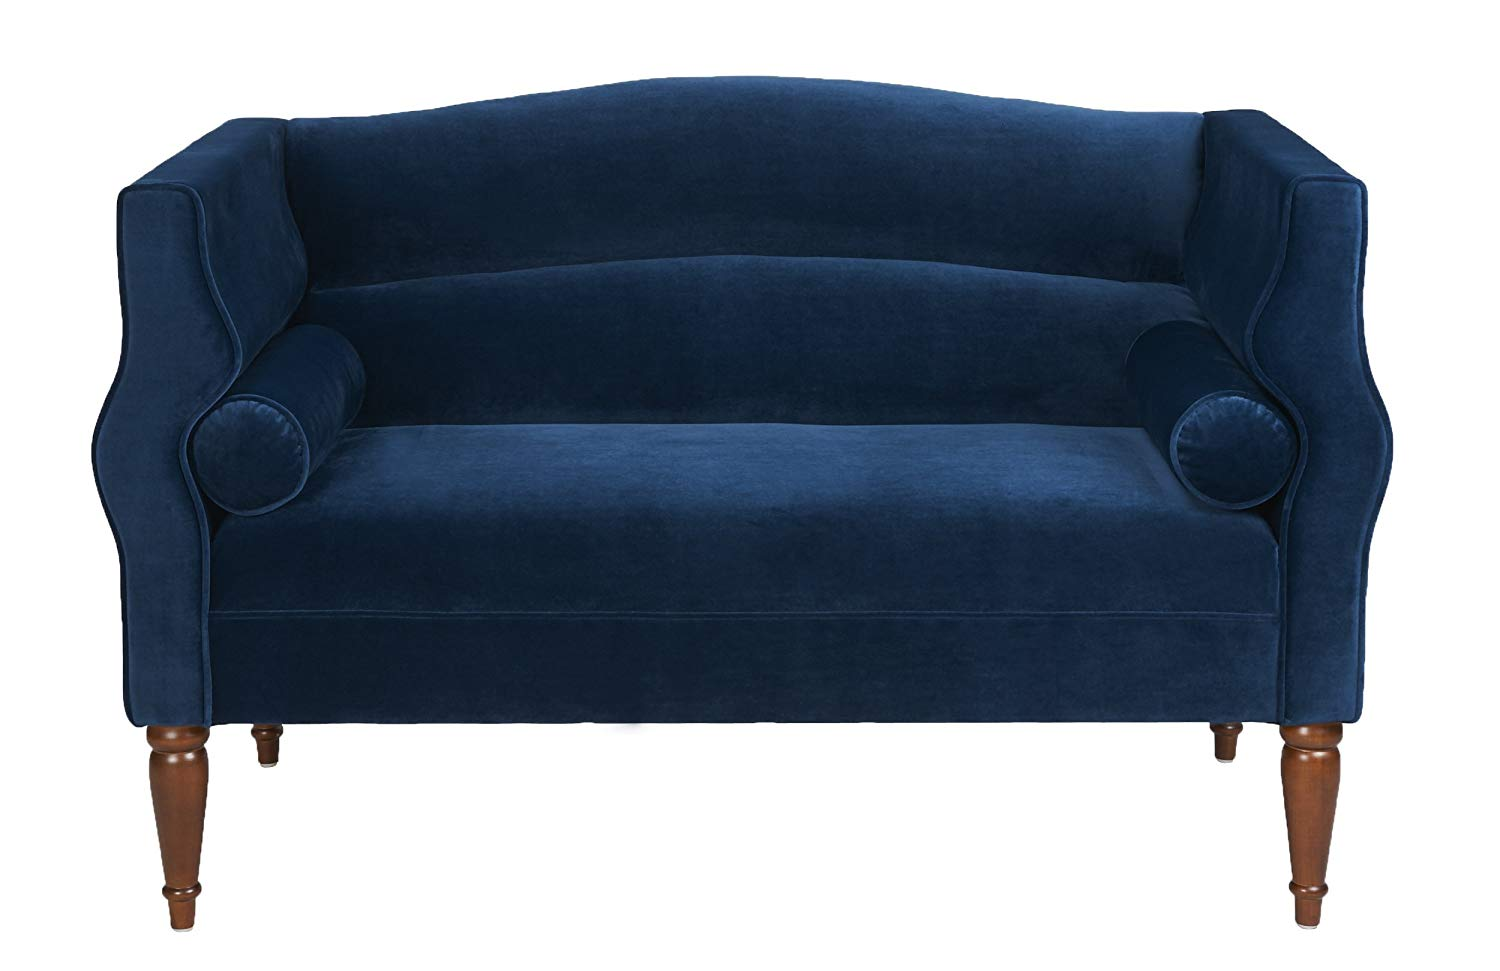 navy blue loveseat amazon.com: jennifer taylor home joanna collection contemporary velvet  upholstered loveseat with 2 PAYMCRB